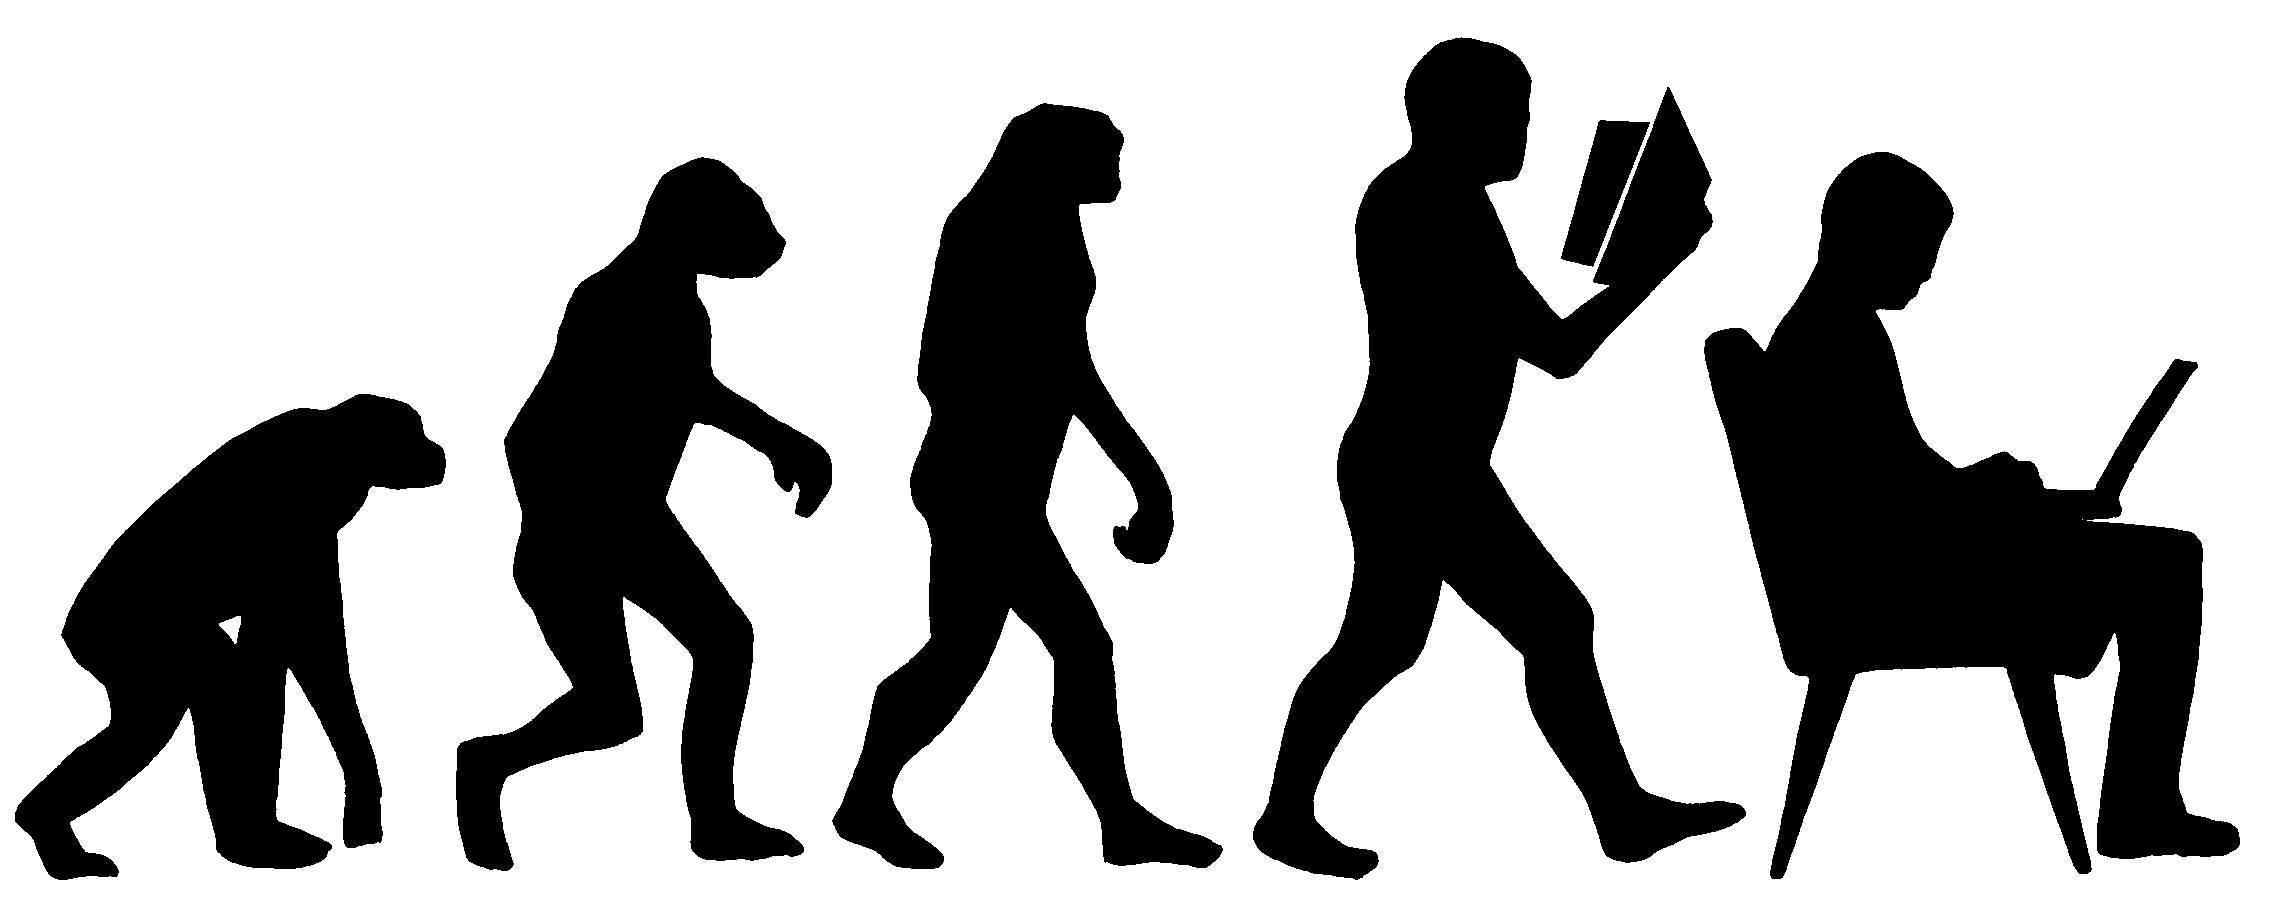 A cartoon showing the evolution of students from a chimp to protohumans to a person sitting with a laptop computer.